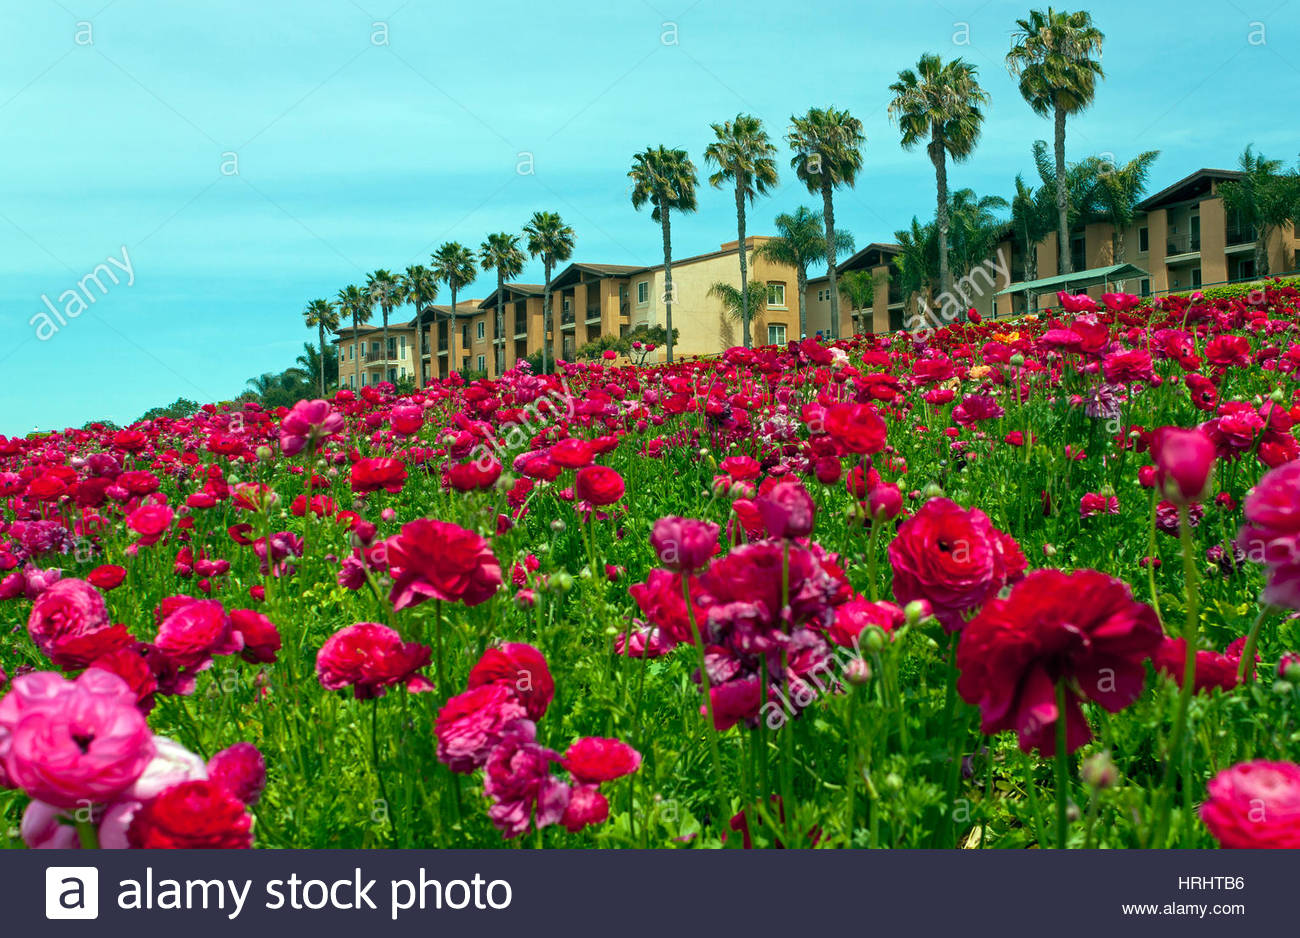 Rows of colorful flowers grow on a hillside in carlsbad california rows of colorful flowers grow on a hillside in carlsbad california mightylinksfo